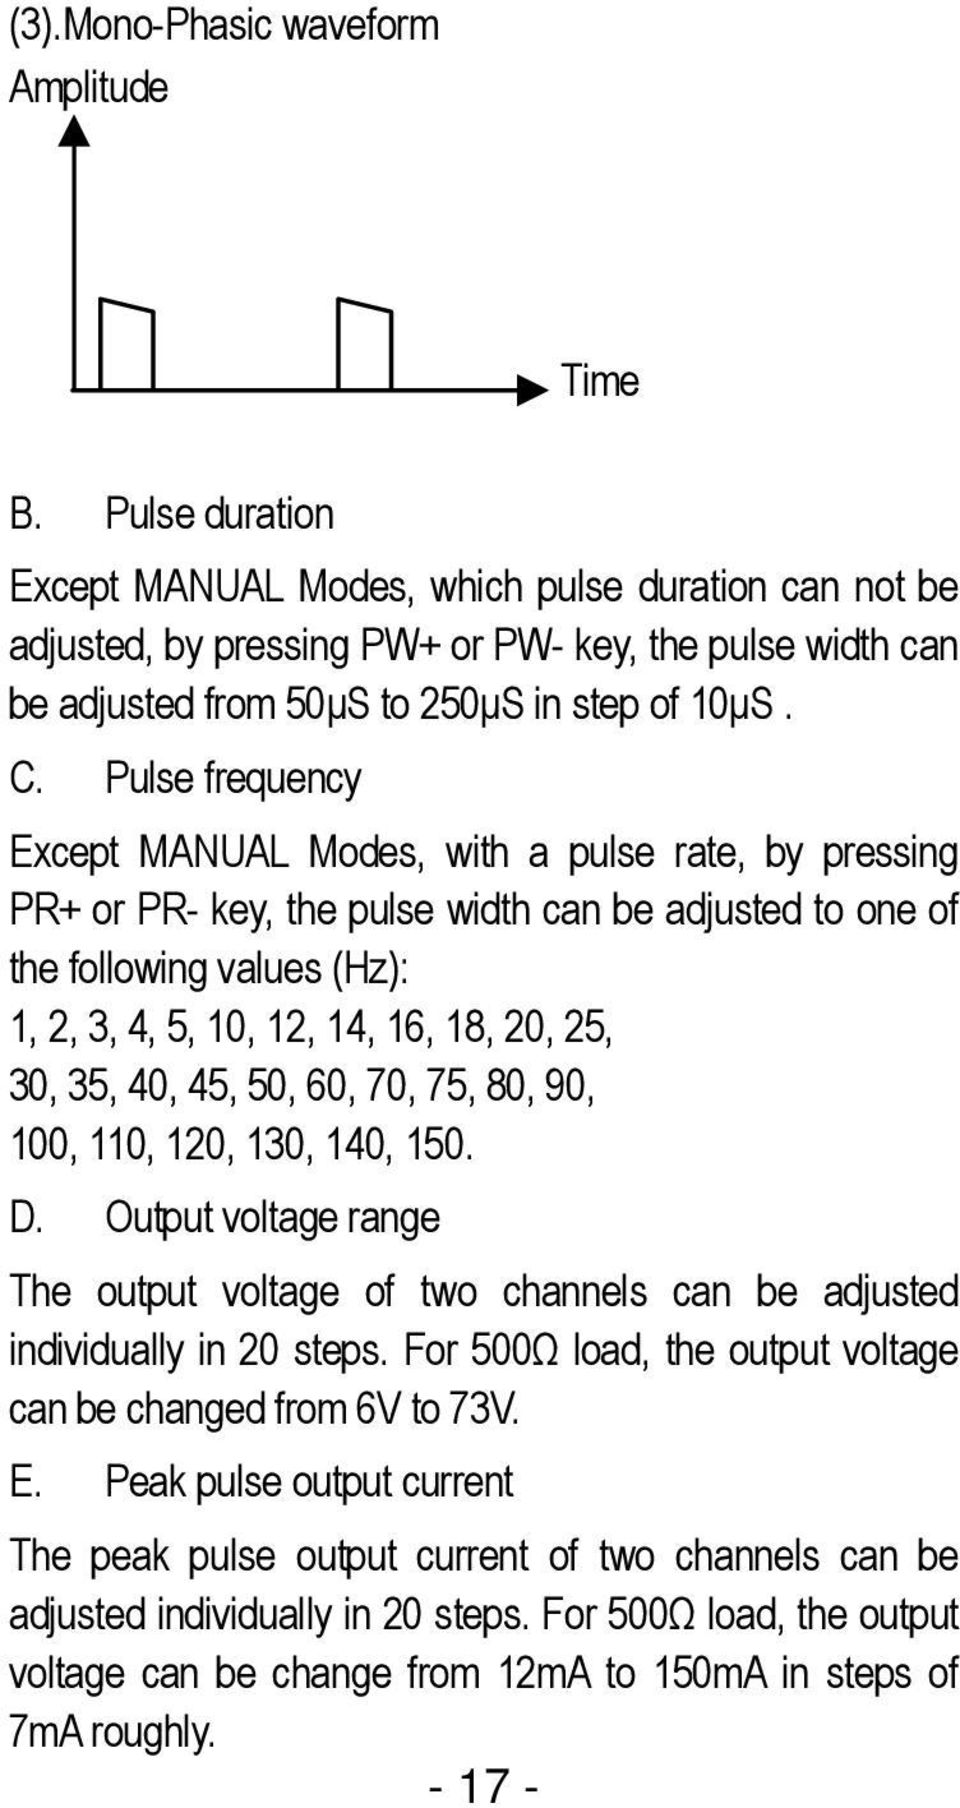 Pulse frequency Except MANUAL Modes, with a pulse rate, by pressing PR+ or PR- key, the pulse width can be adjusted to one of the following values (Hz): 1, 2, 3, 4, 5, 10, 12, 14, 16, 18, 20, 25, 30,